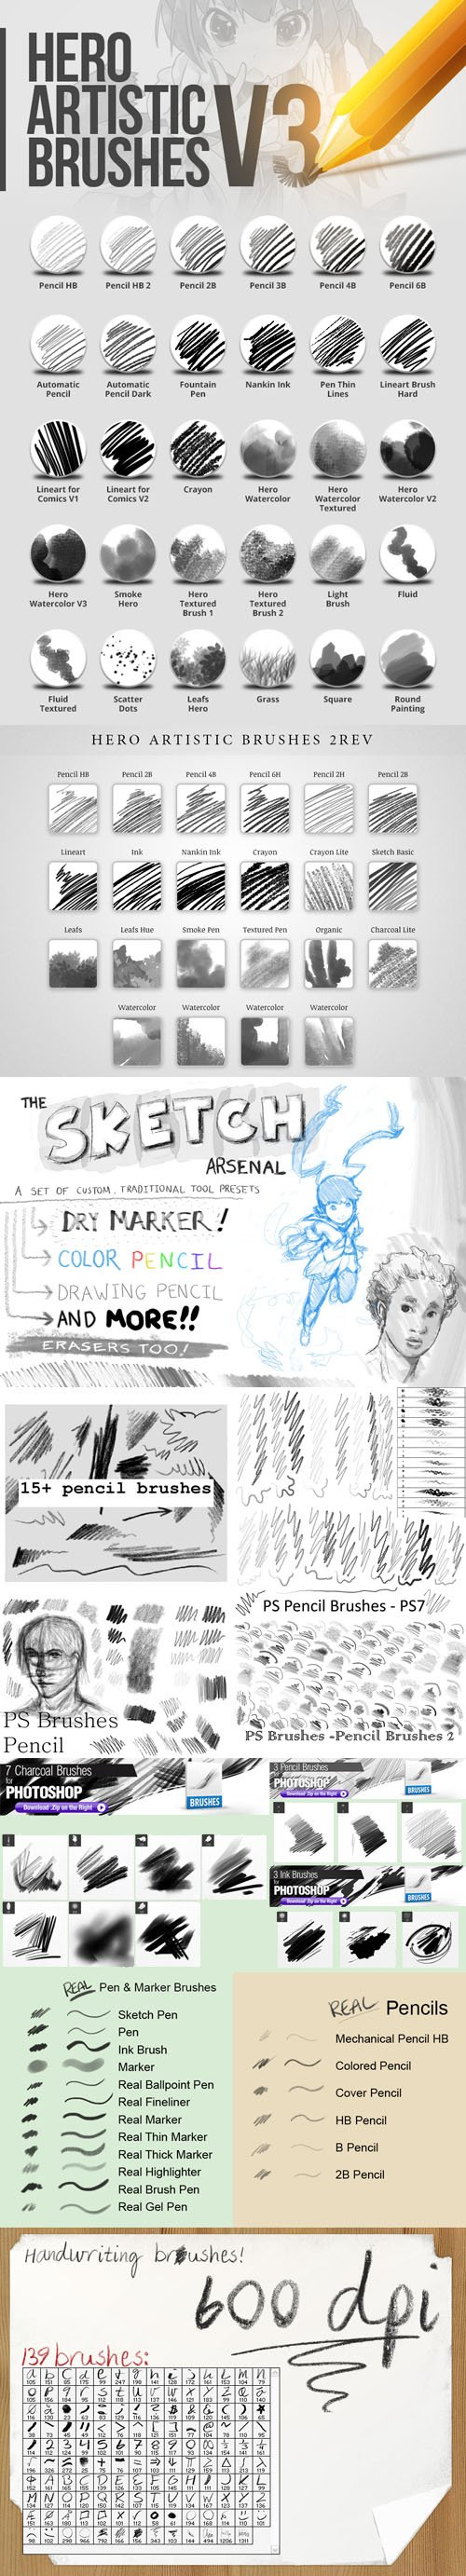 370+ Handwriting Brushes Collection for Photoshop